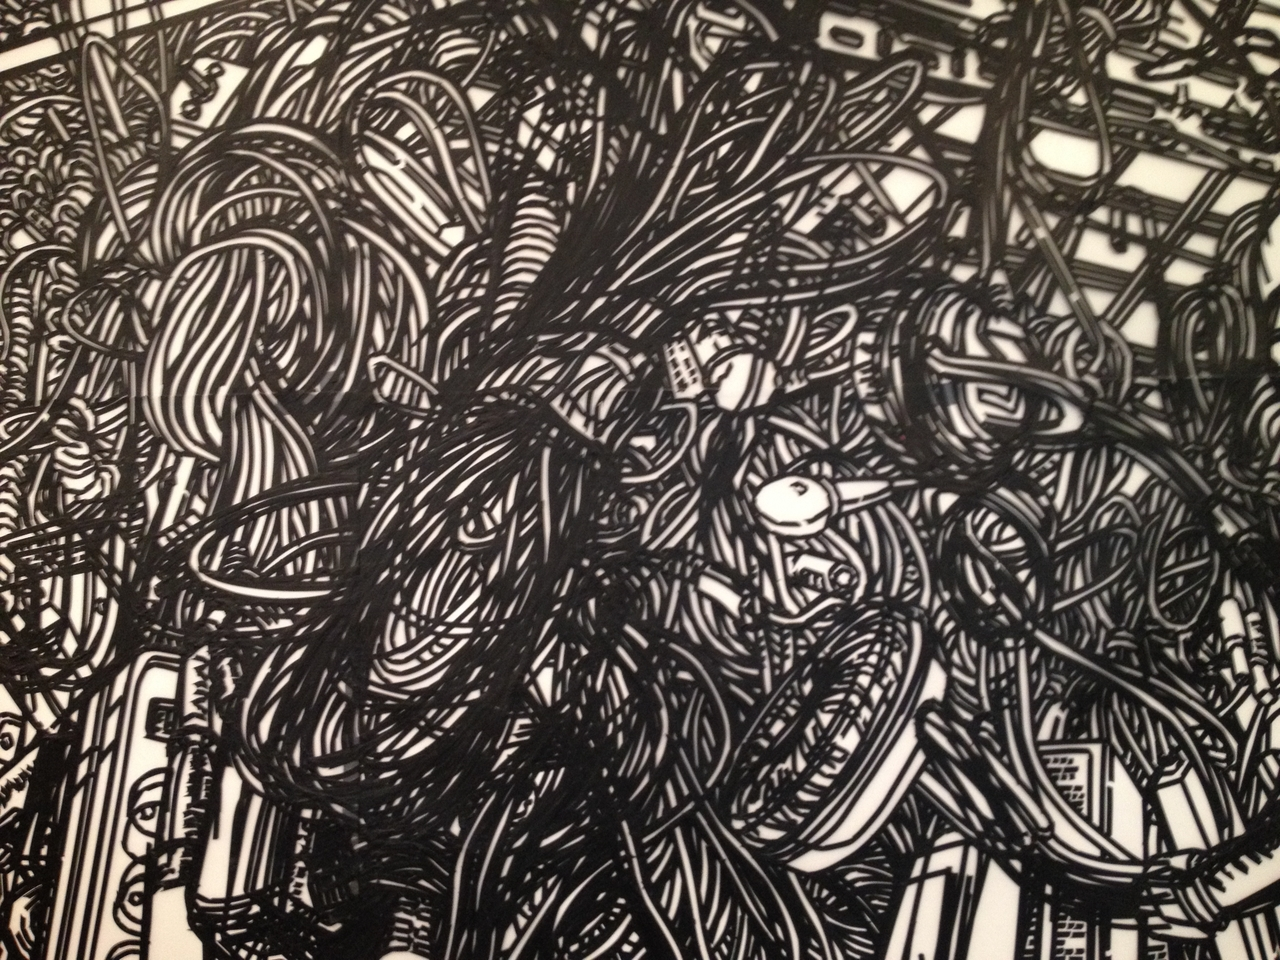 Wall Scribble #pepper #drawing #wall #black #white #lines #nyc #gallery #chelsea